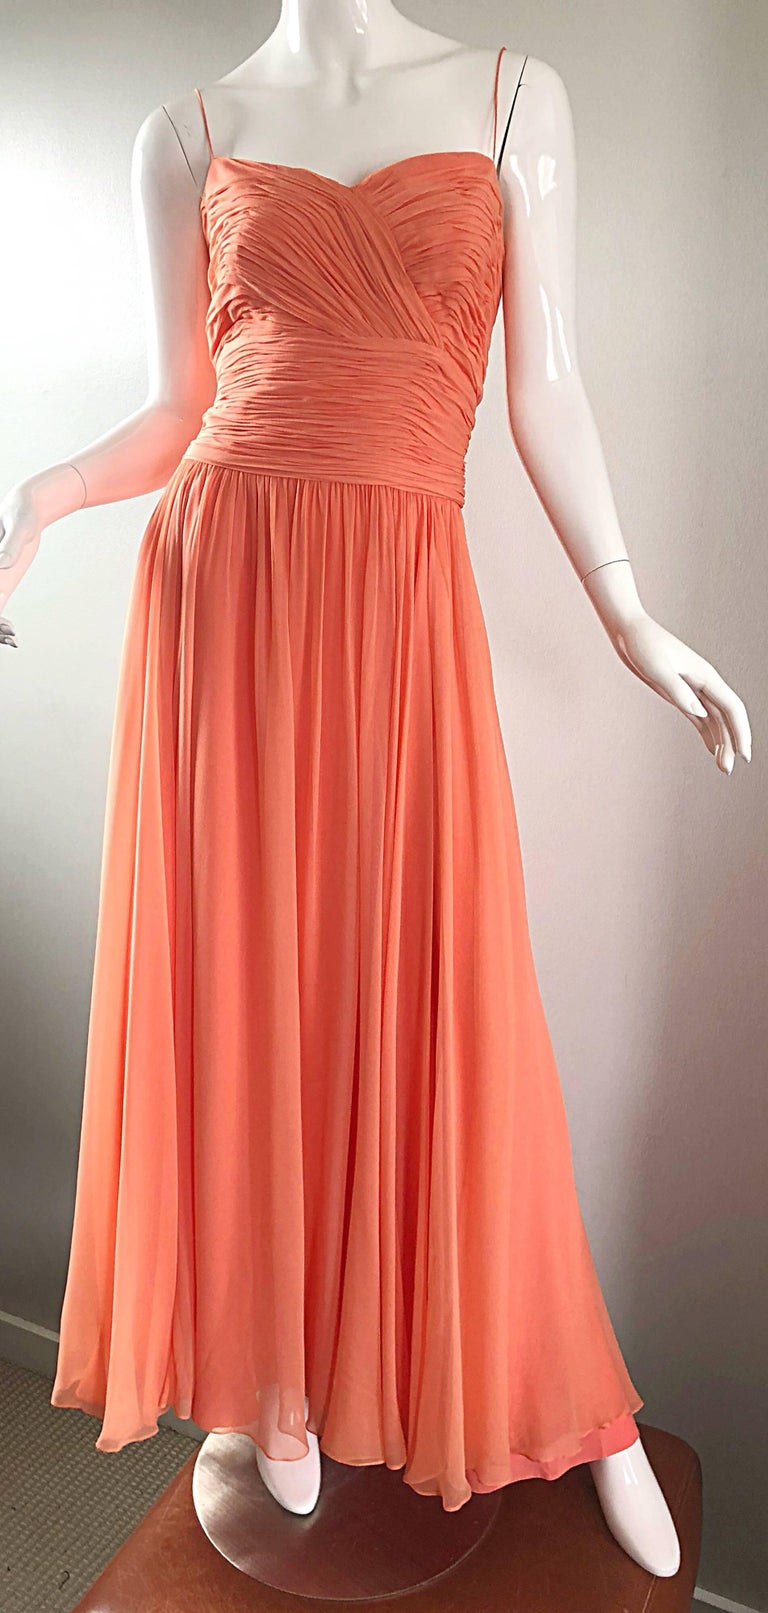 Gorgeous 1950s Saks 5th Ave. Salmon / Coral Pink Silk Chiffon Vintage 50s Gown For Sale 1